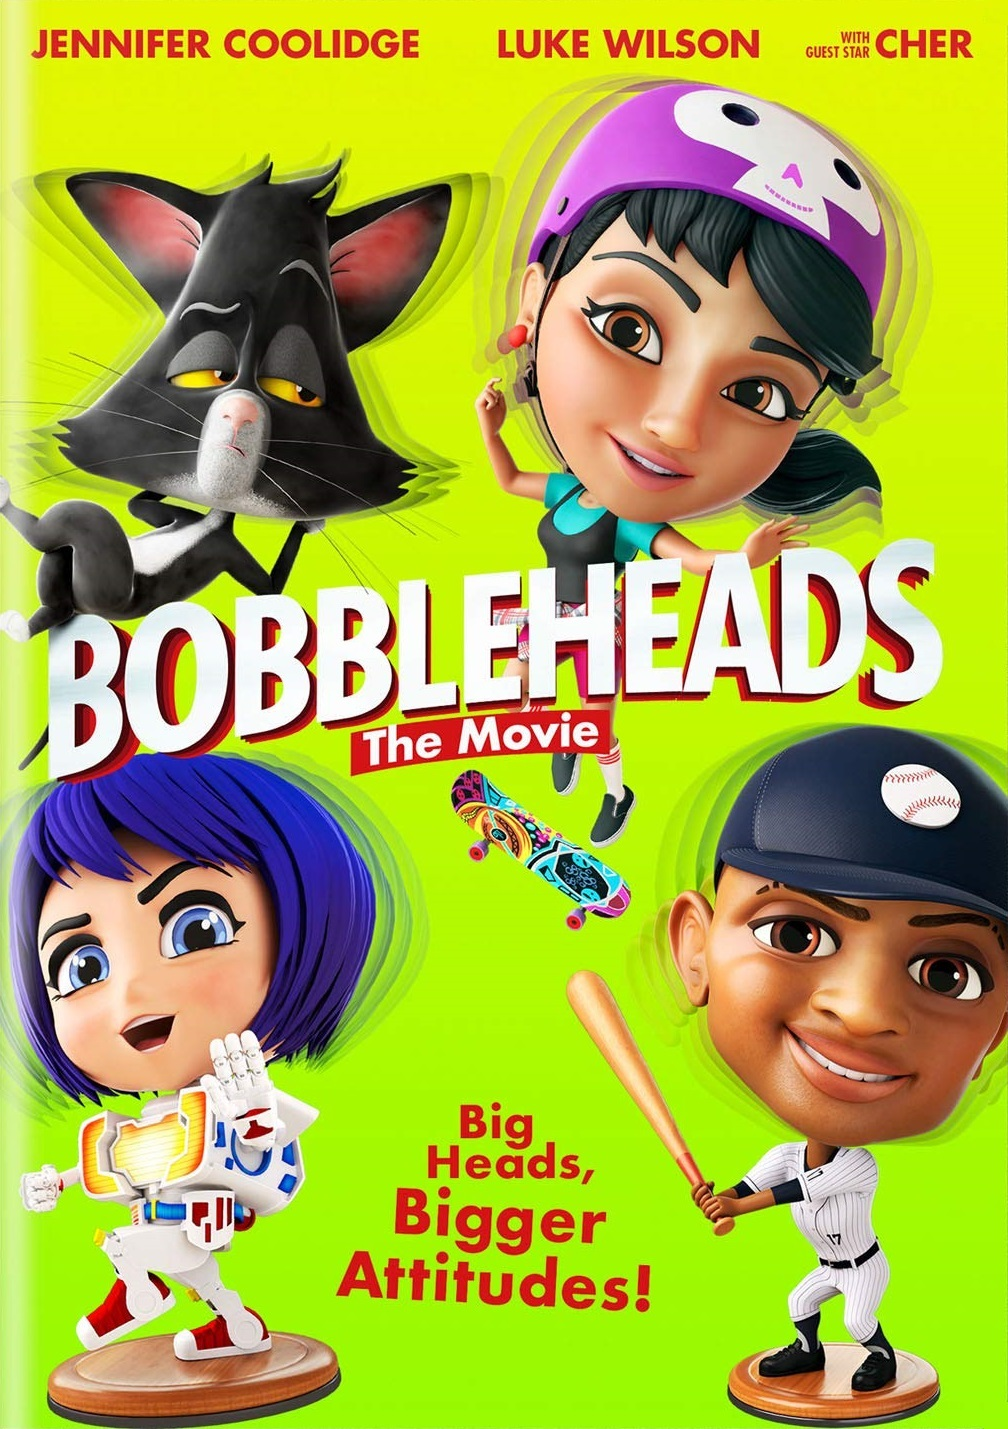 Bobbleheads The Movie.jpg